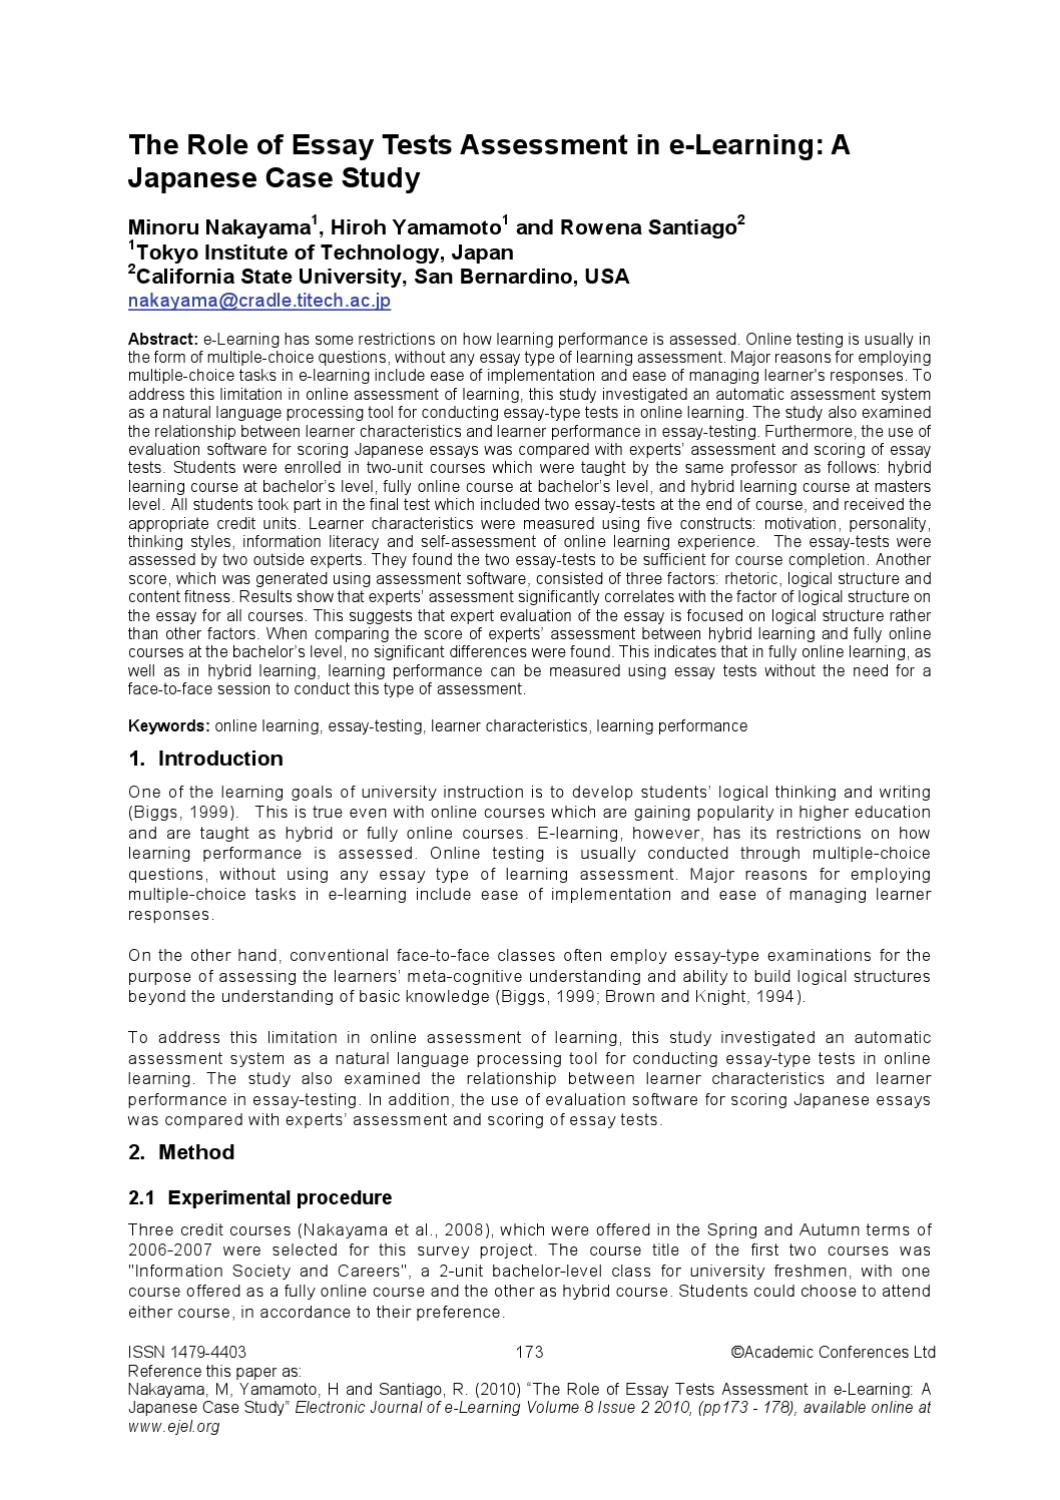 The Role Of Essay Tests Assessment In Elearning A Japanese Case  The Role Of Essay Tests Assessment In Elearning A Japanese Case Study By  Academic Conferences And Publishing International  Issuu